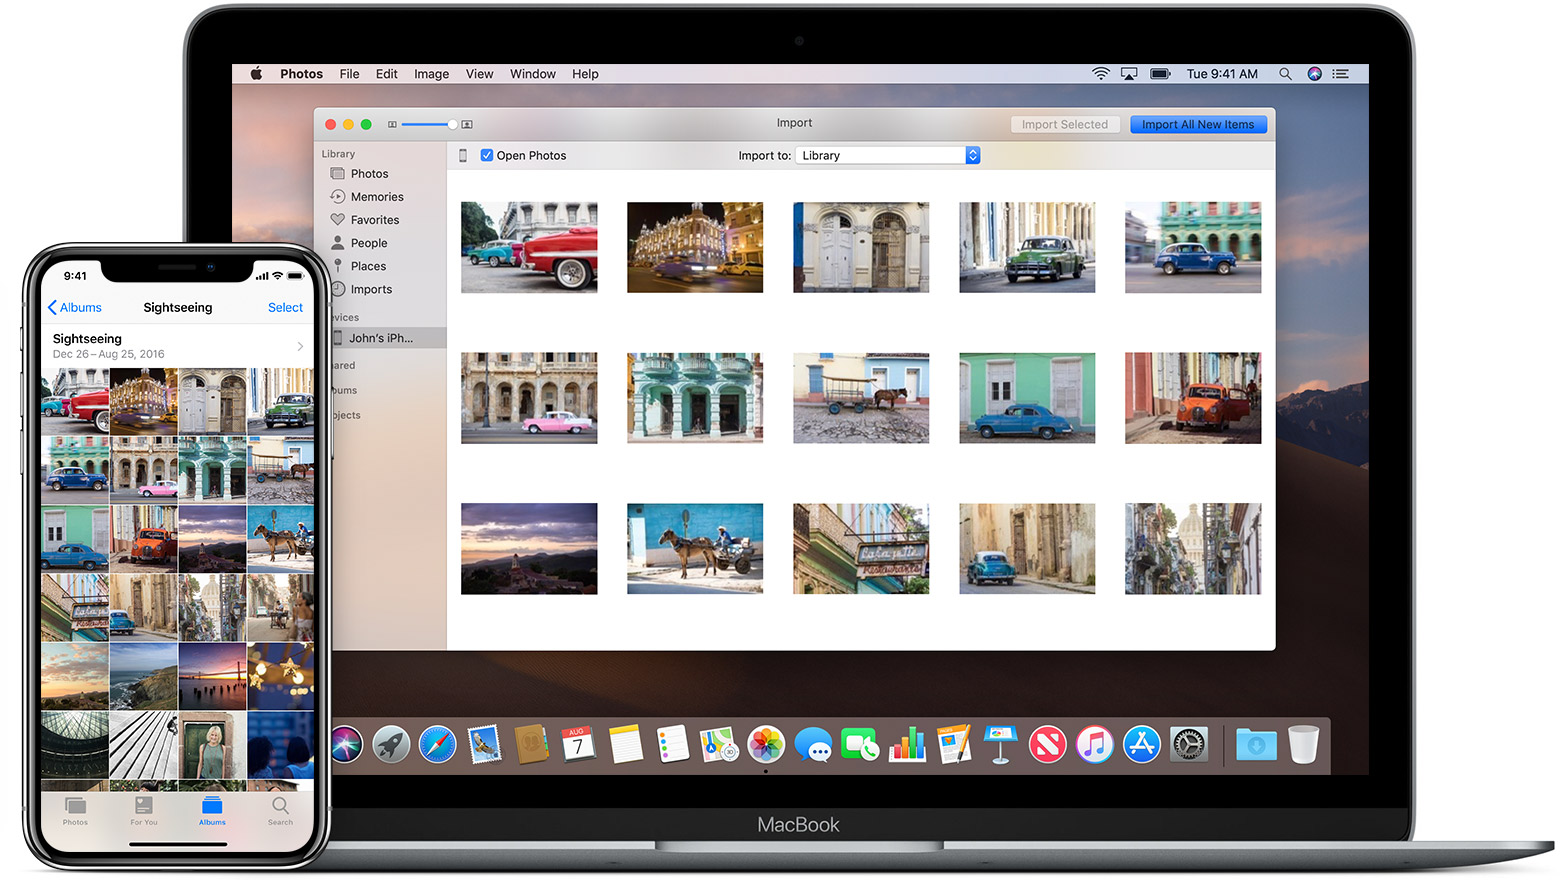 Ipad photo viewer with file name